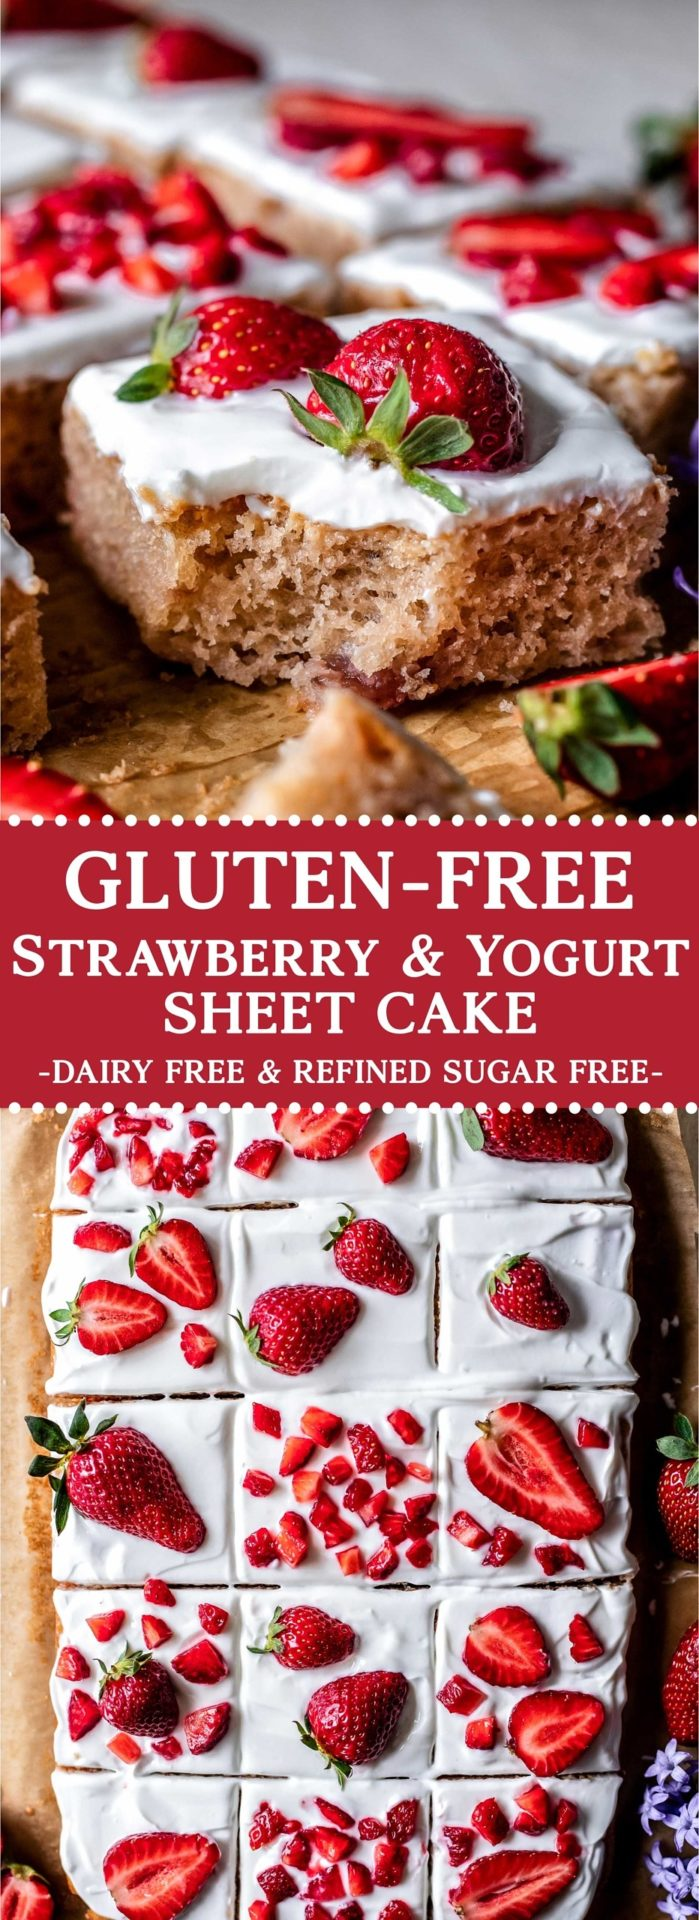 This Gluten-Free Strawberry & Yogurt Sheet Cake is tender, fruity, light, healthy, and incredibly easy to make! Plus it is gluten, dairy and refined sugar free!